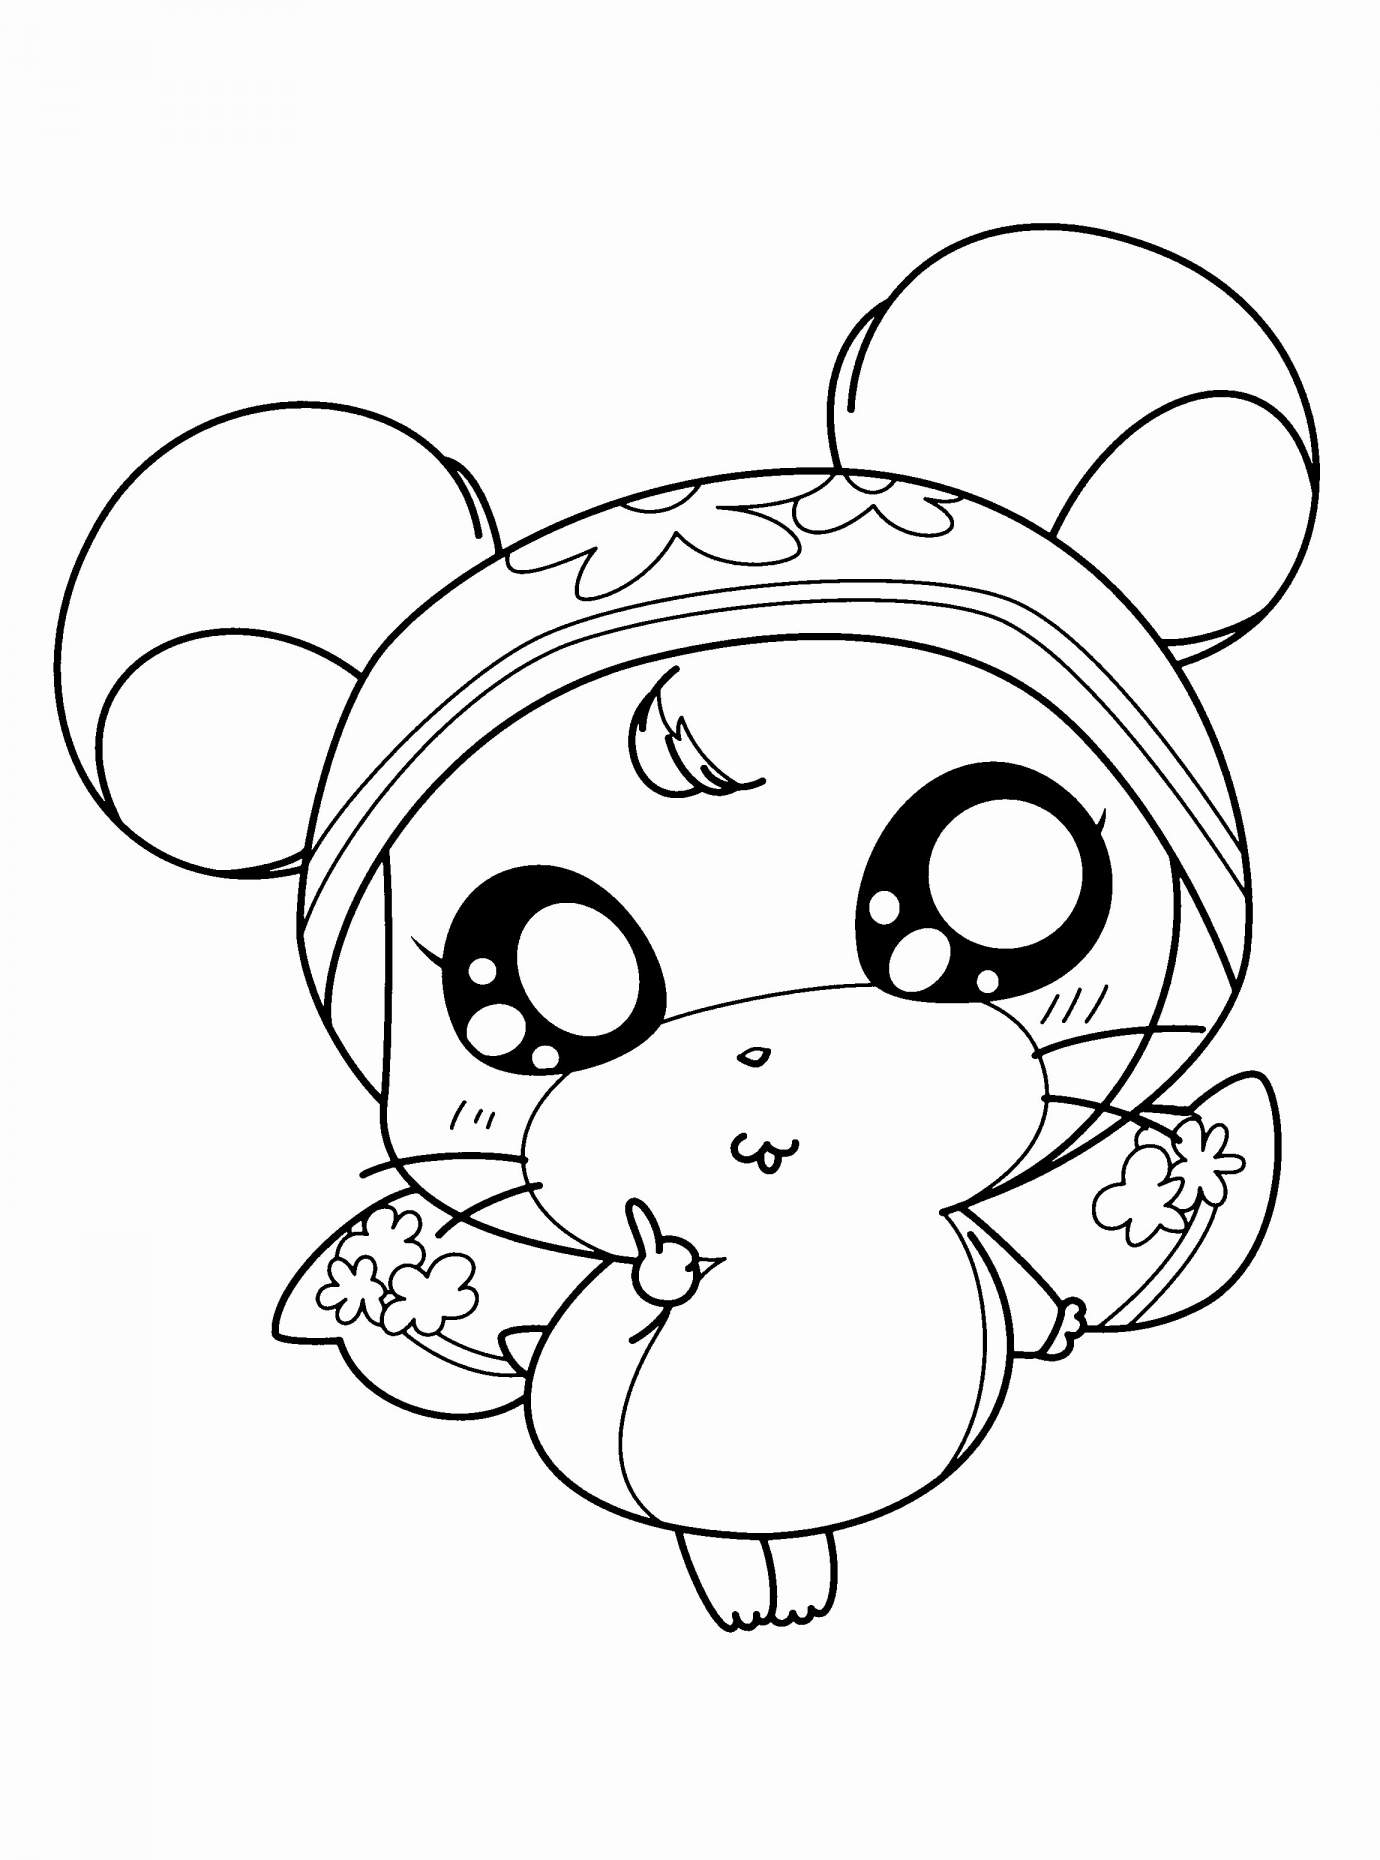 nickelodeon cartoon coloring pages Collection-Christmas Elves Coloring Pages Elf Coloring Page New Colering Beautiful Coloring Papers 0d Archives 4-o